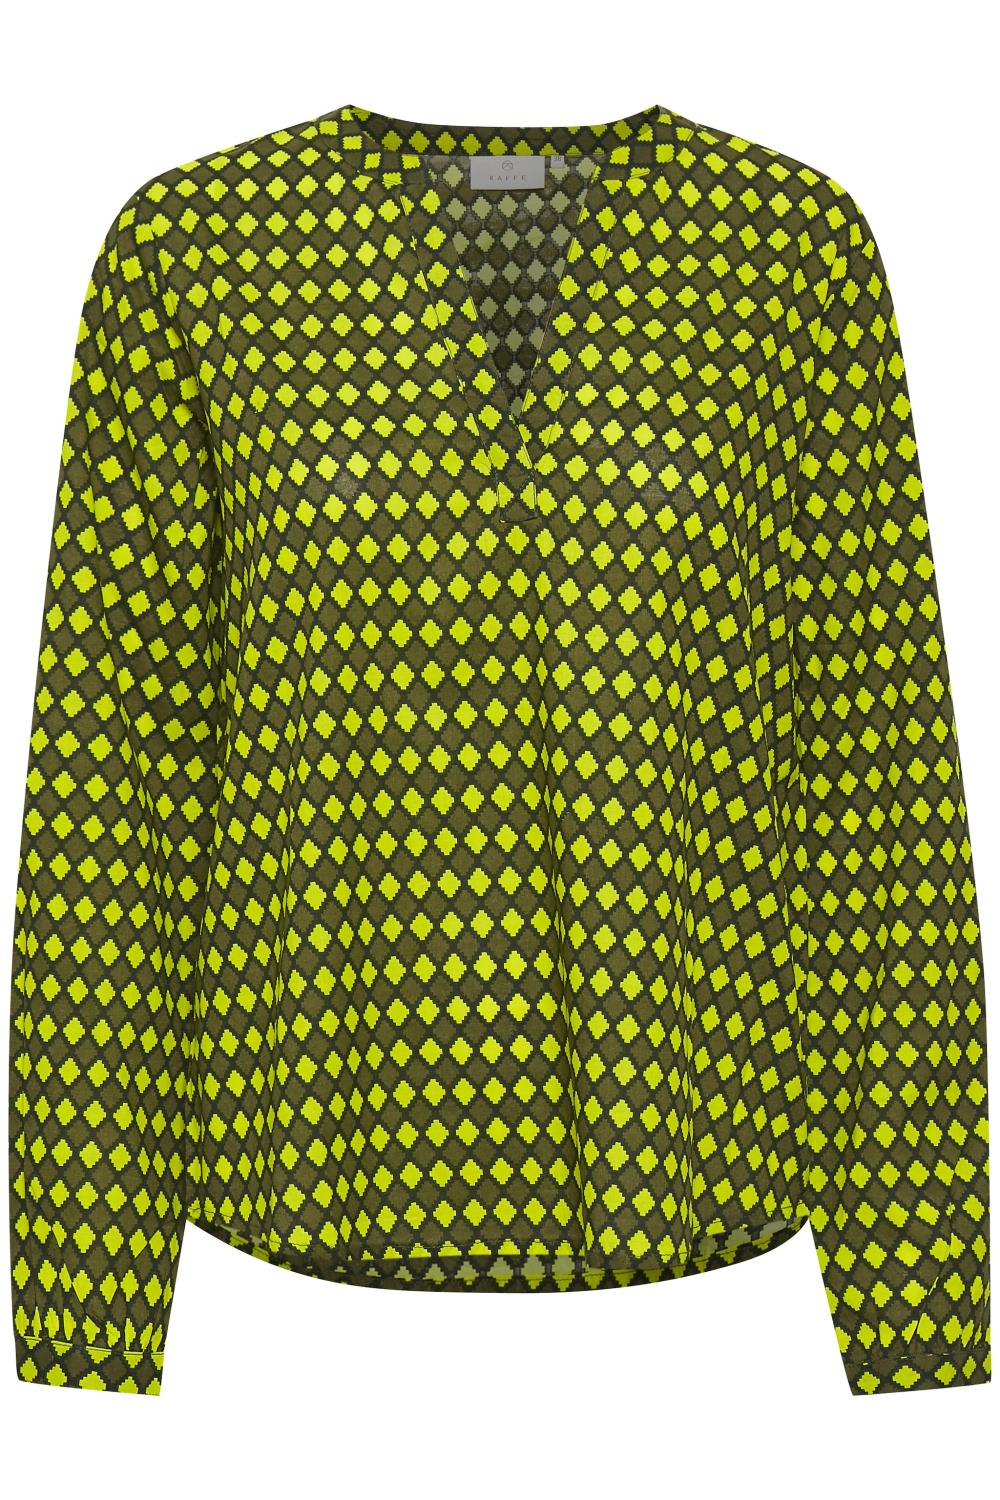 Kaffe KAsary Tilly Blouse, neon diamond print